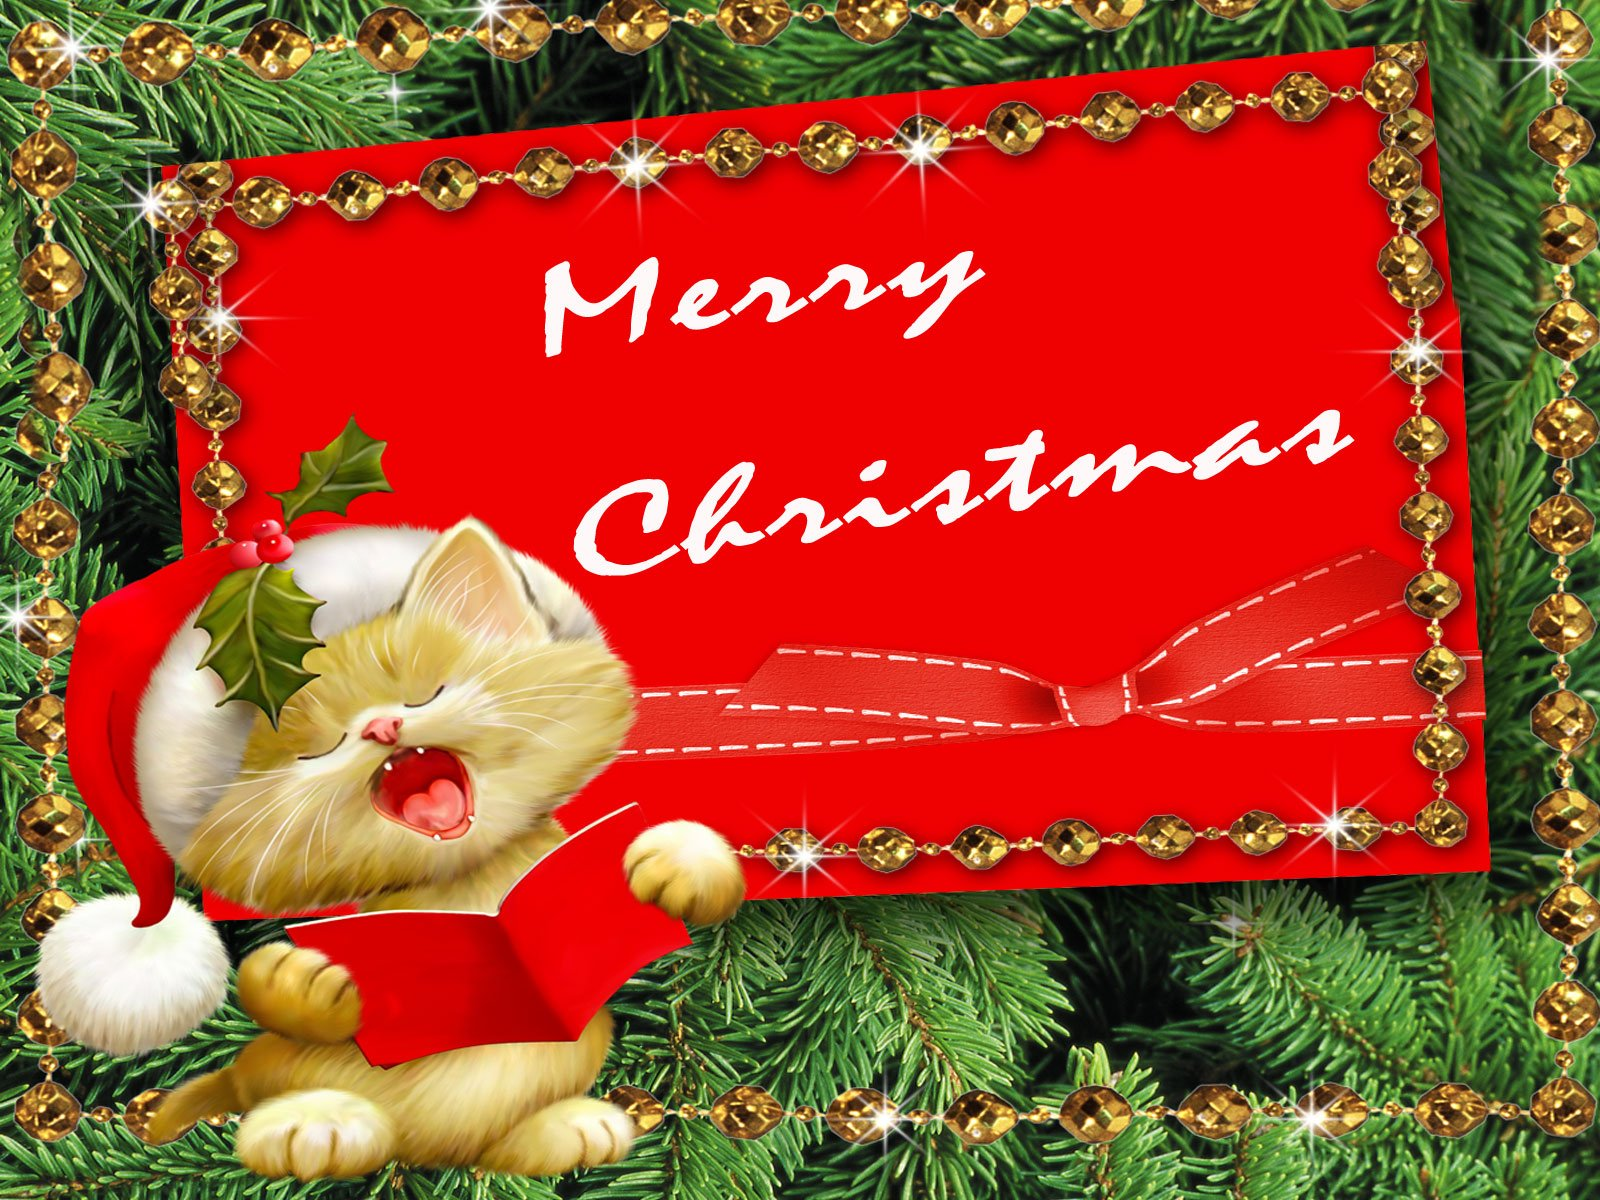 Merry Christmas Kitten computer desktop wallpaper 1600x1200